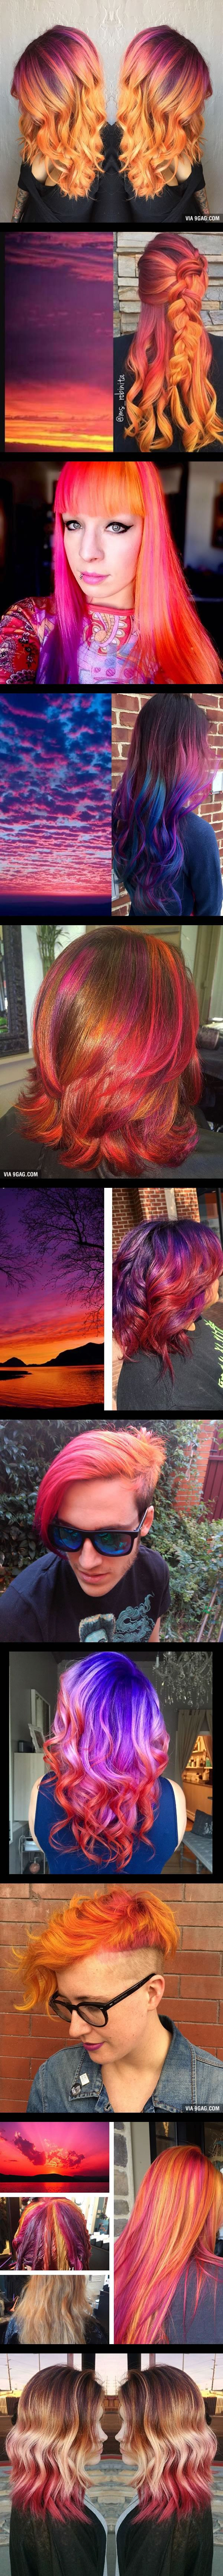 People Are Dying Their Hair To Match The Sunset And It's Breathtaking